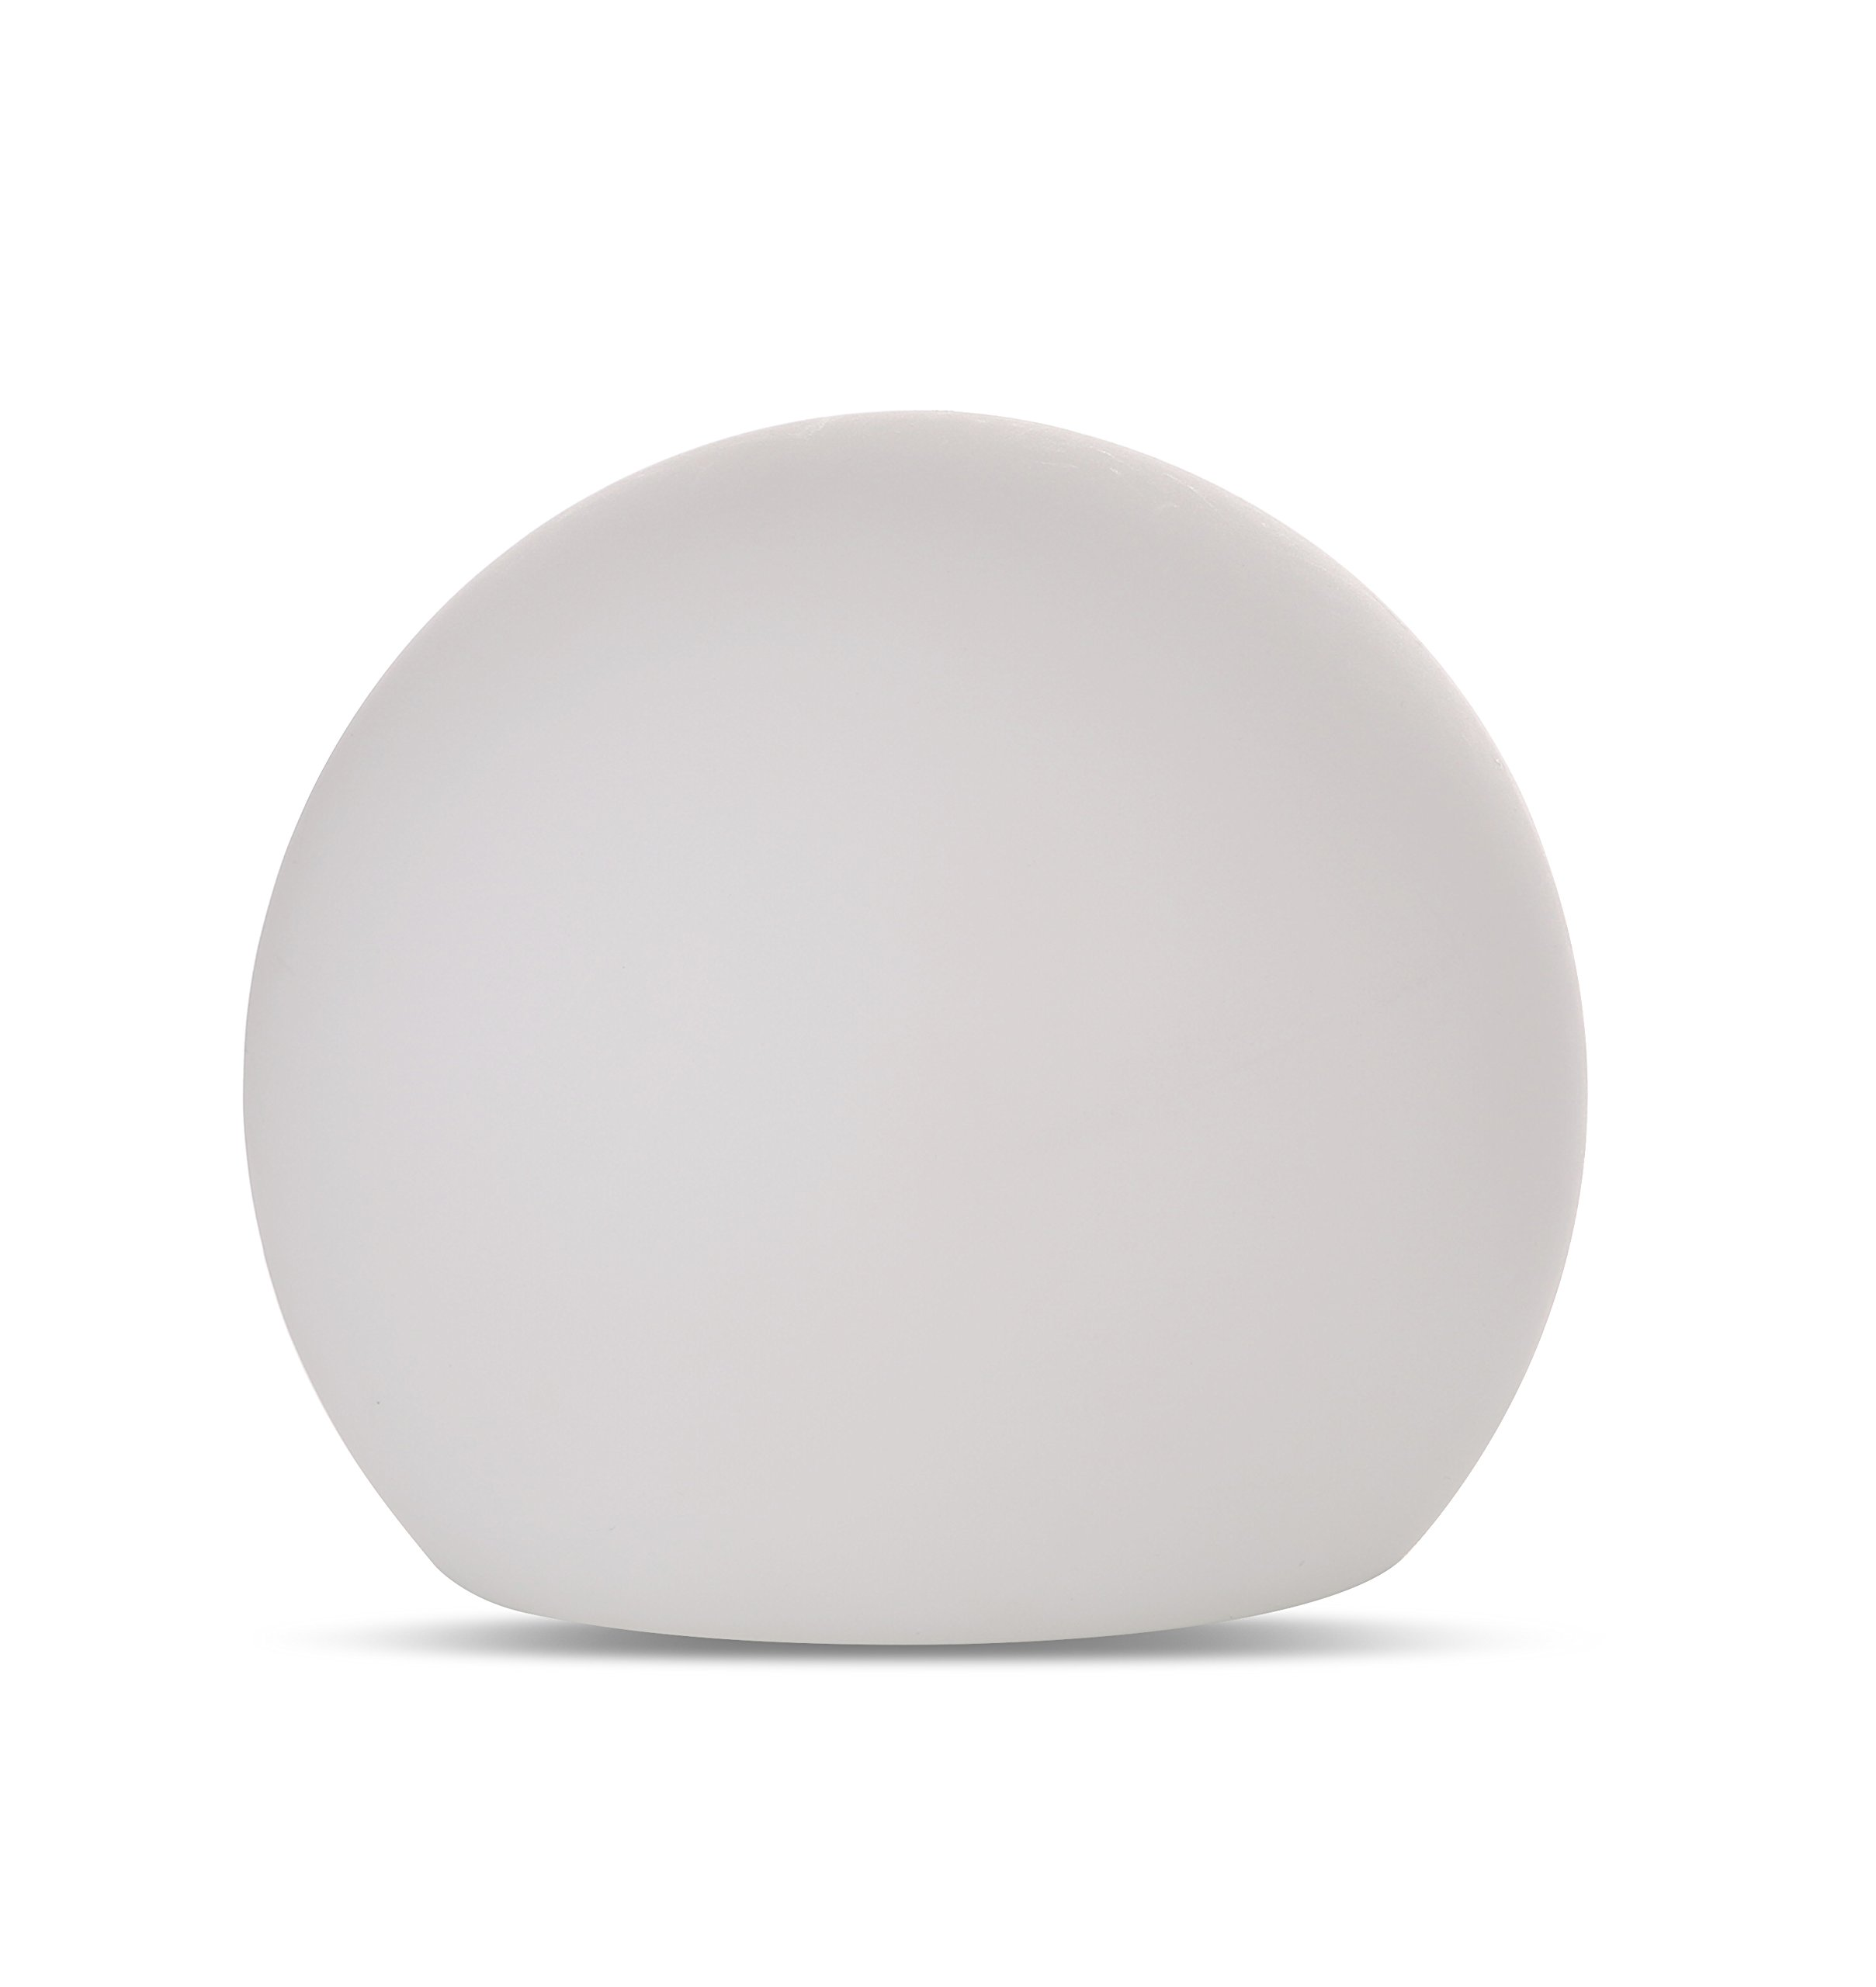 WiFi Smart Ambient LED Ball Night Light Work with Amazon Alexa and Google Home, Bedside/Table Lamp for Kids, Multi-Function Color Changing Rechargeable Cordless Portable Outdoor Waterproof